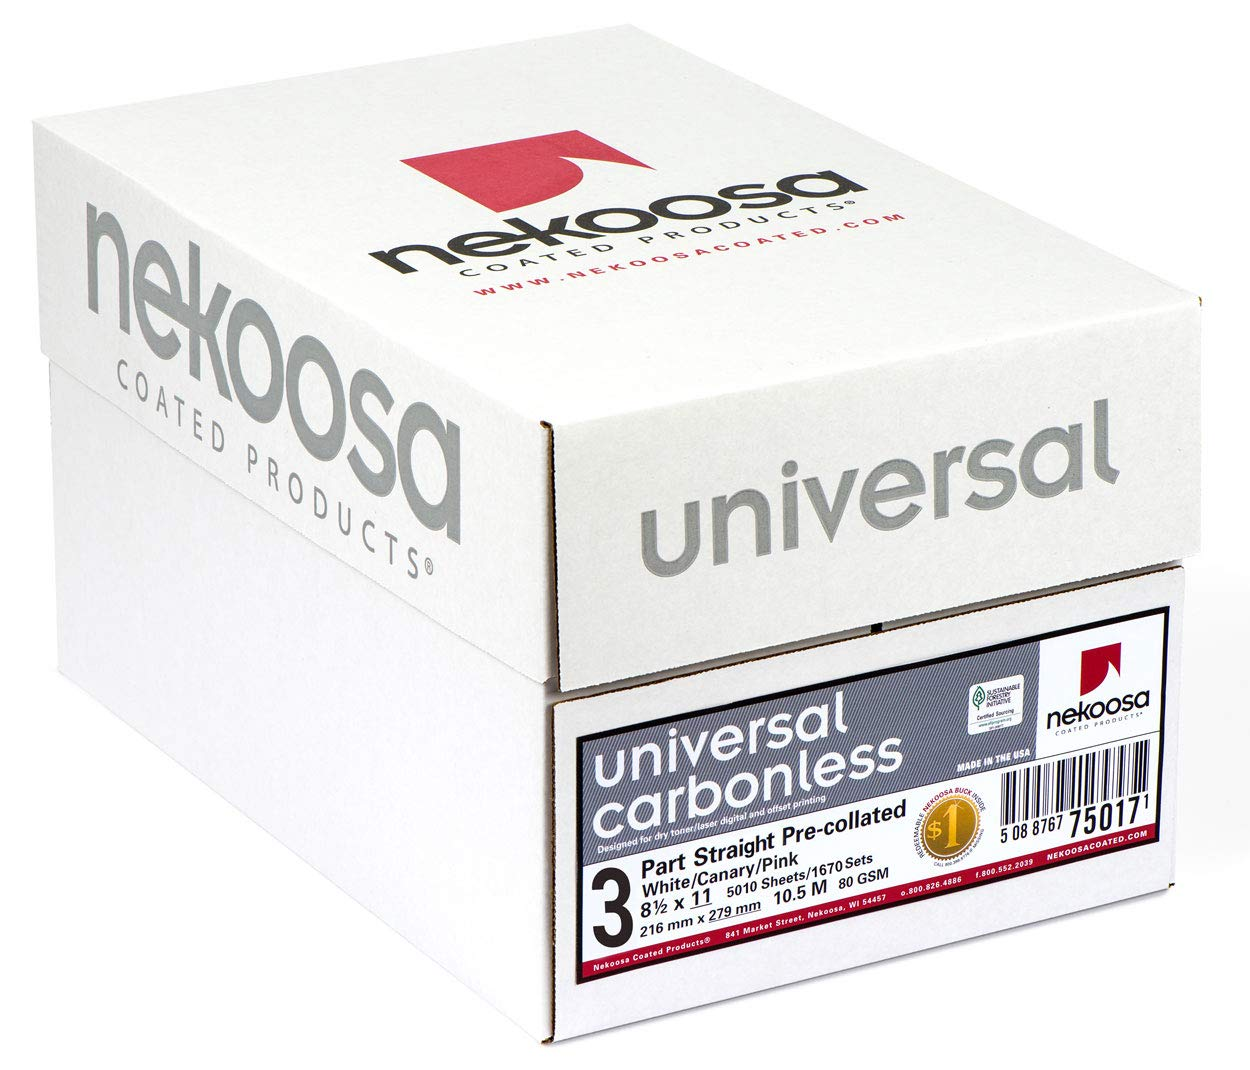 8.5 x 11 Nekoosa Universal Carbonless Paper, 3 Part Straight/Forward (Bright White/Canary/Pink), 1670 Sets, 5010 Sheets, 10 Reams by PSD